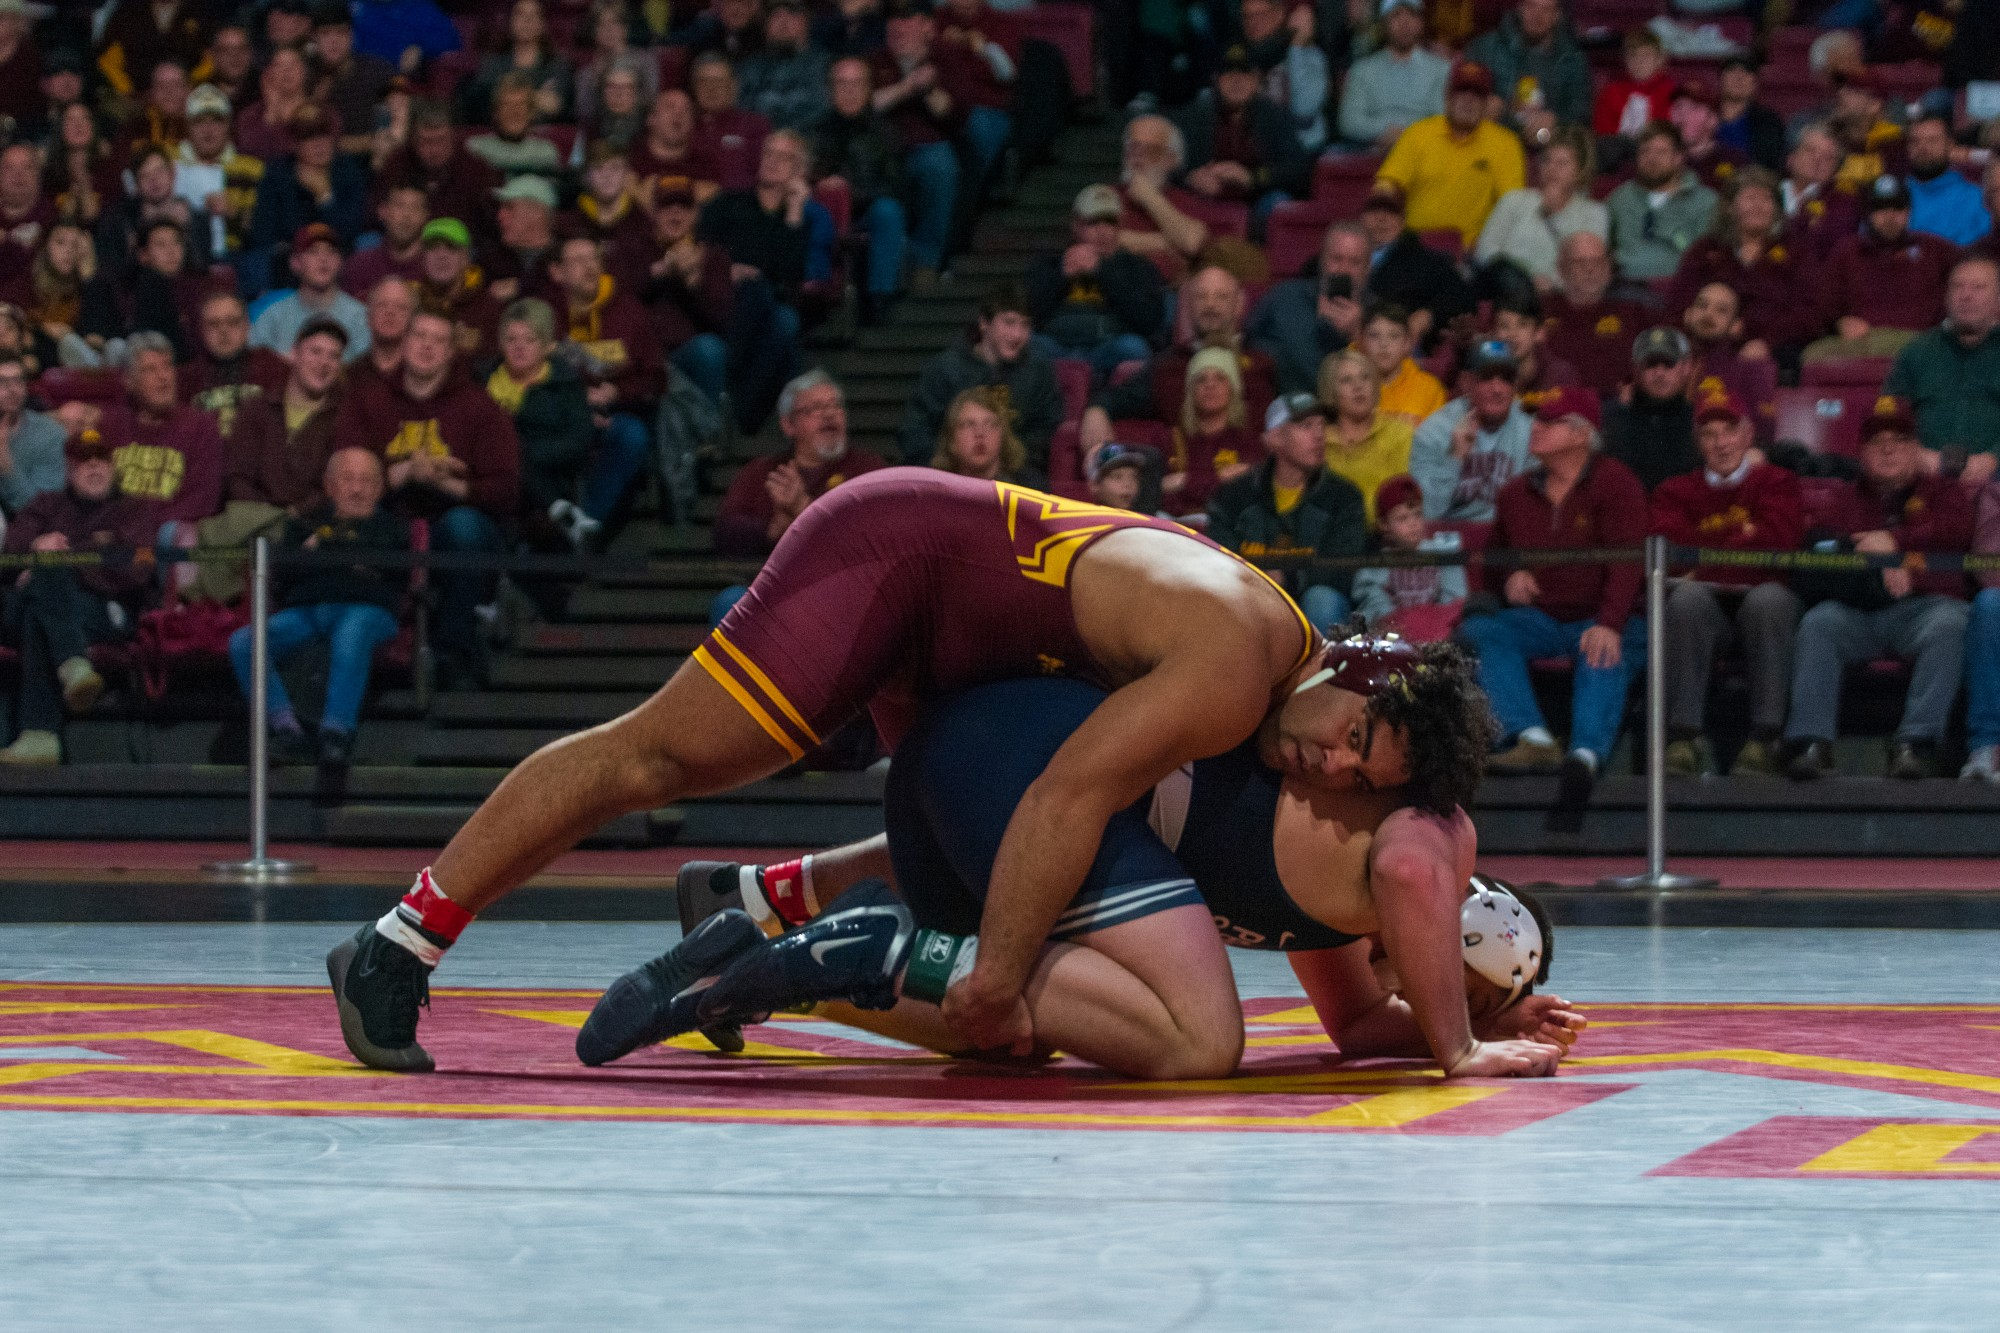 Gable Steveson grapples with his opponent at Maturi Pavilion on Sunday, Feb. 9, 2019. The Gophers lost to Penn State 31-10.